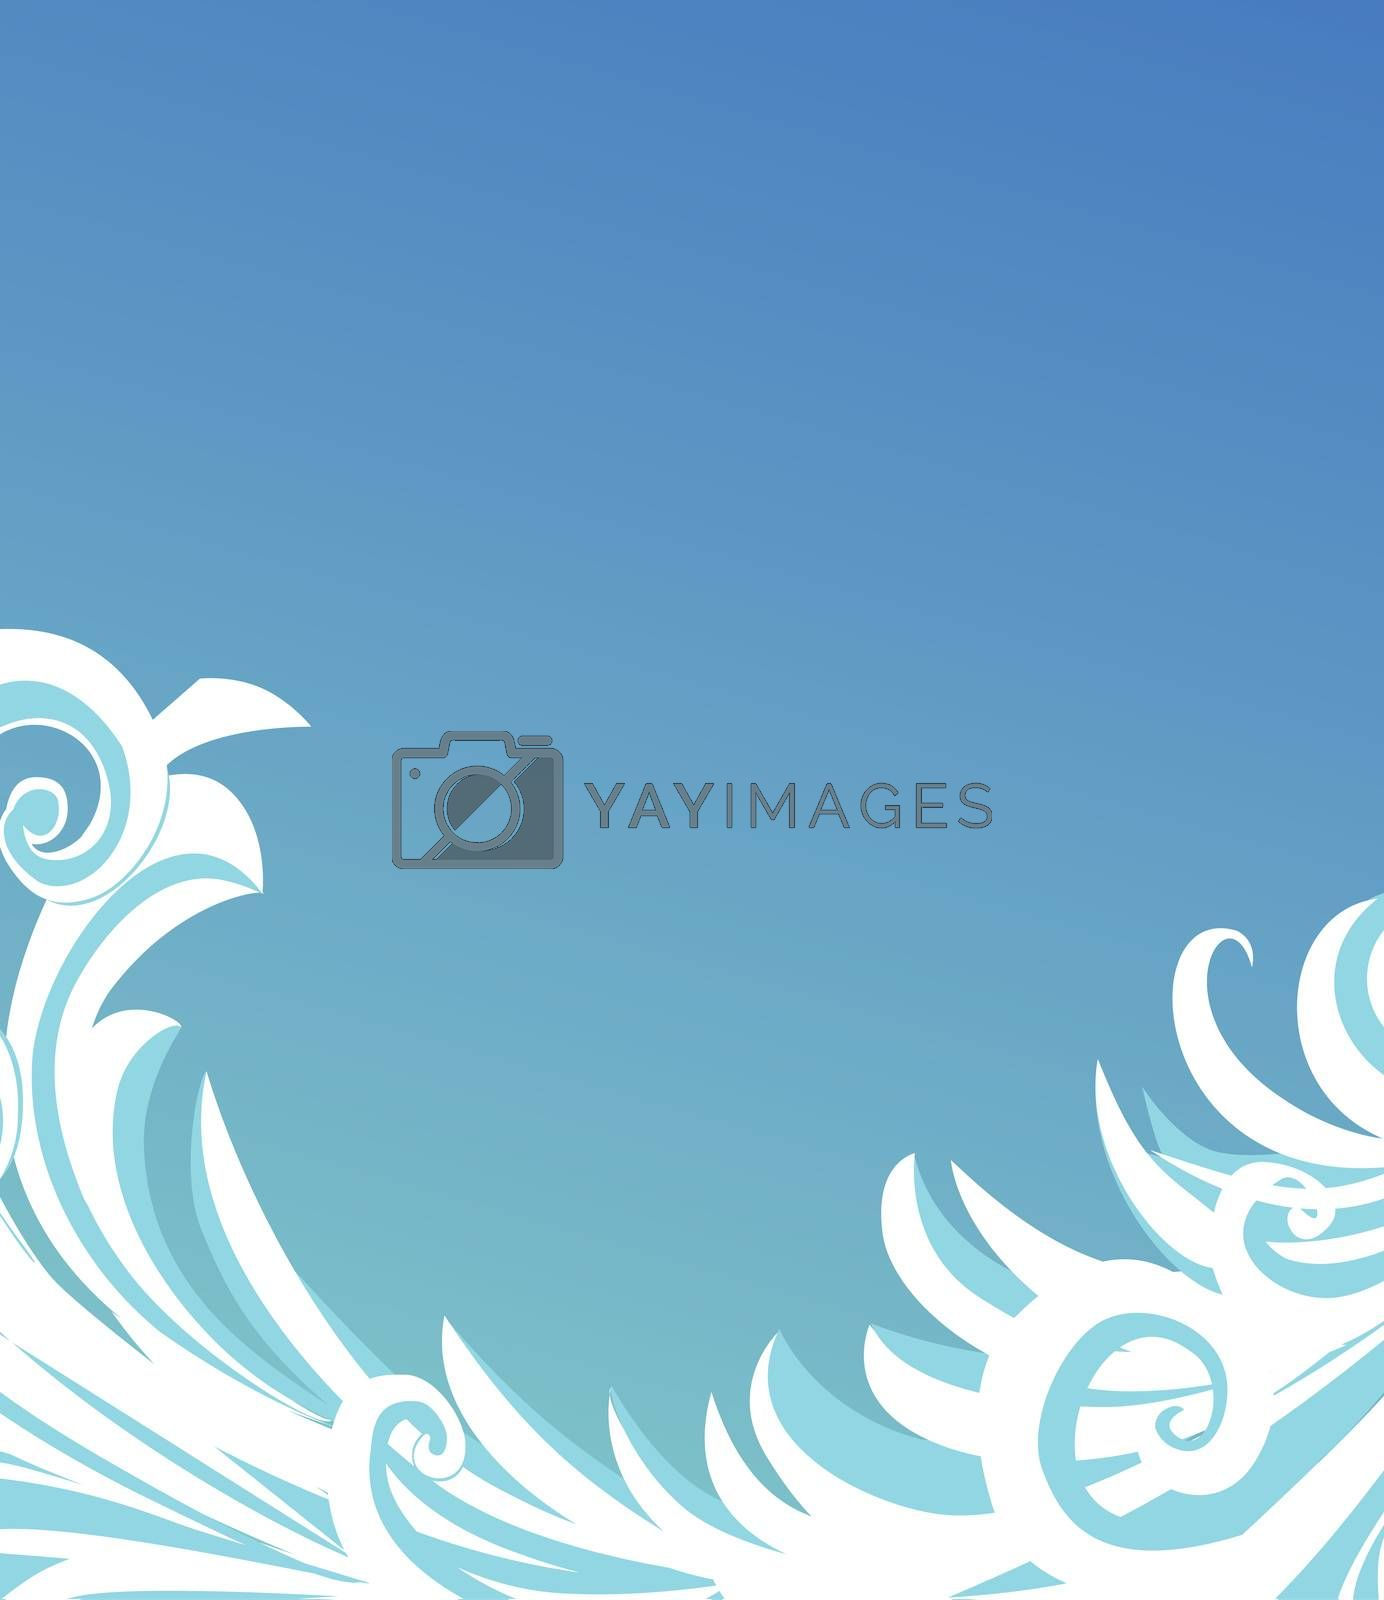 Royalty free image of abstract blue wave background by CherJu